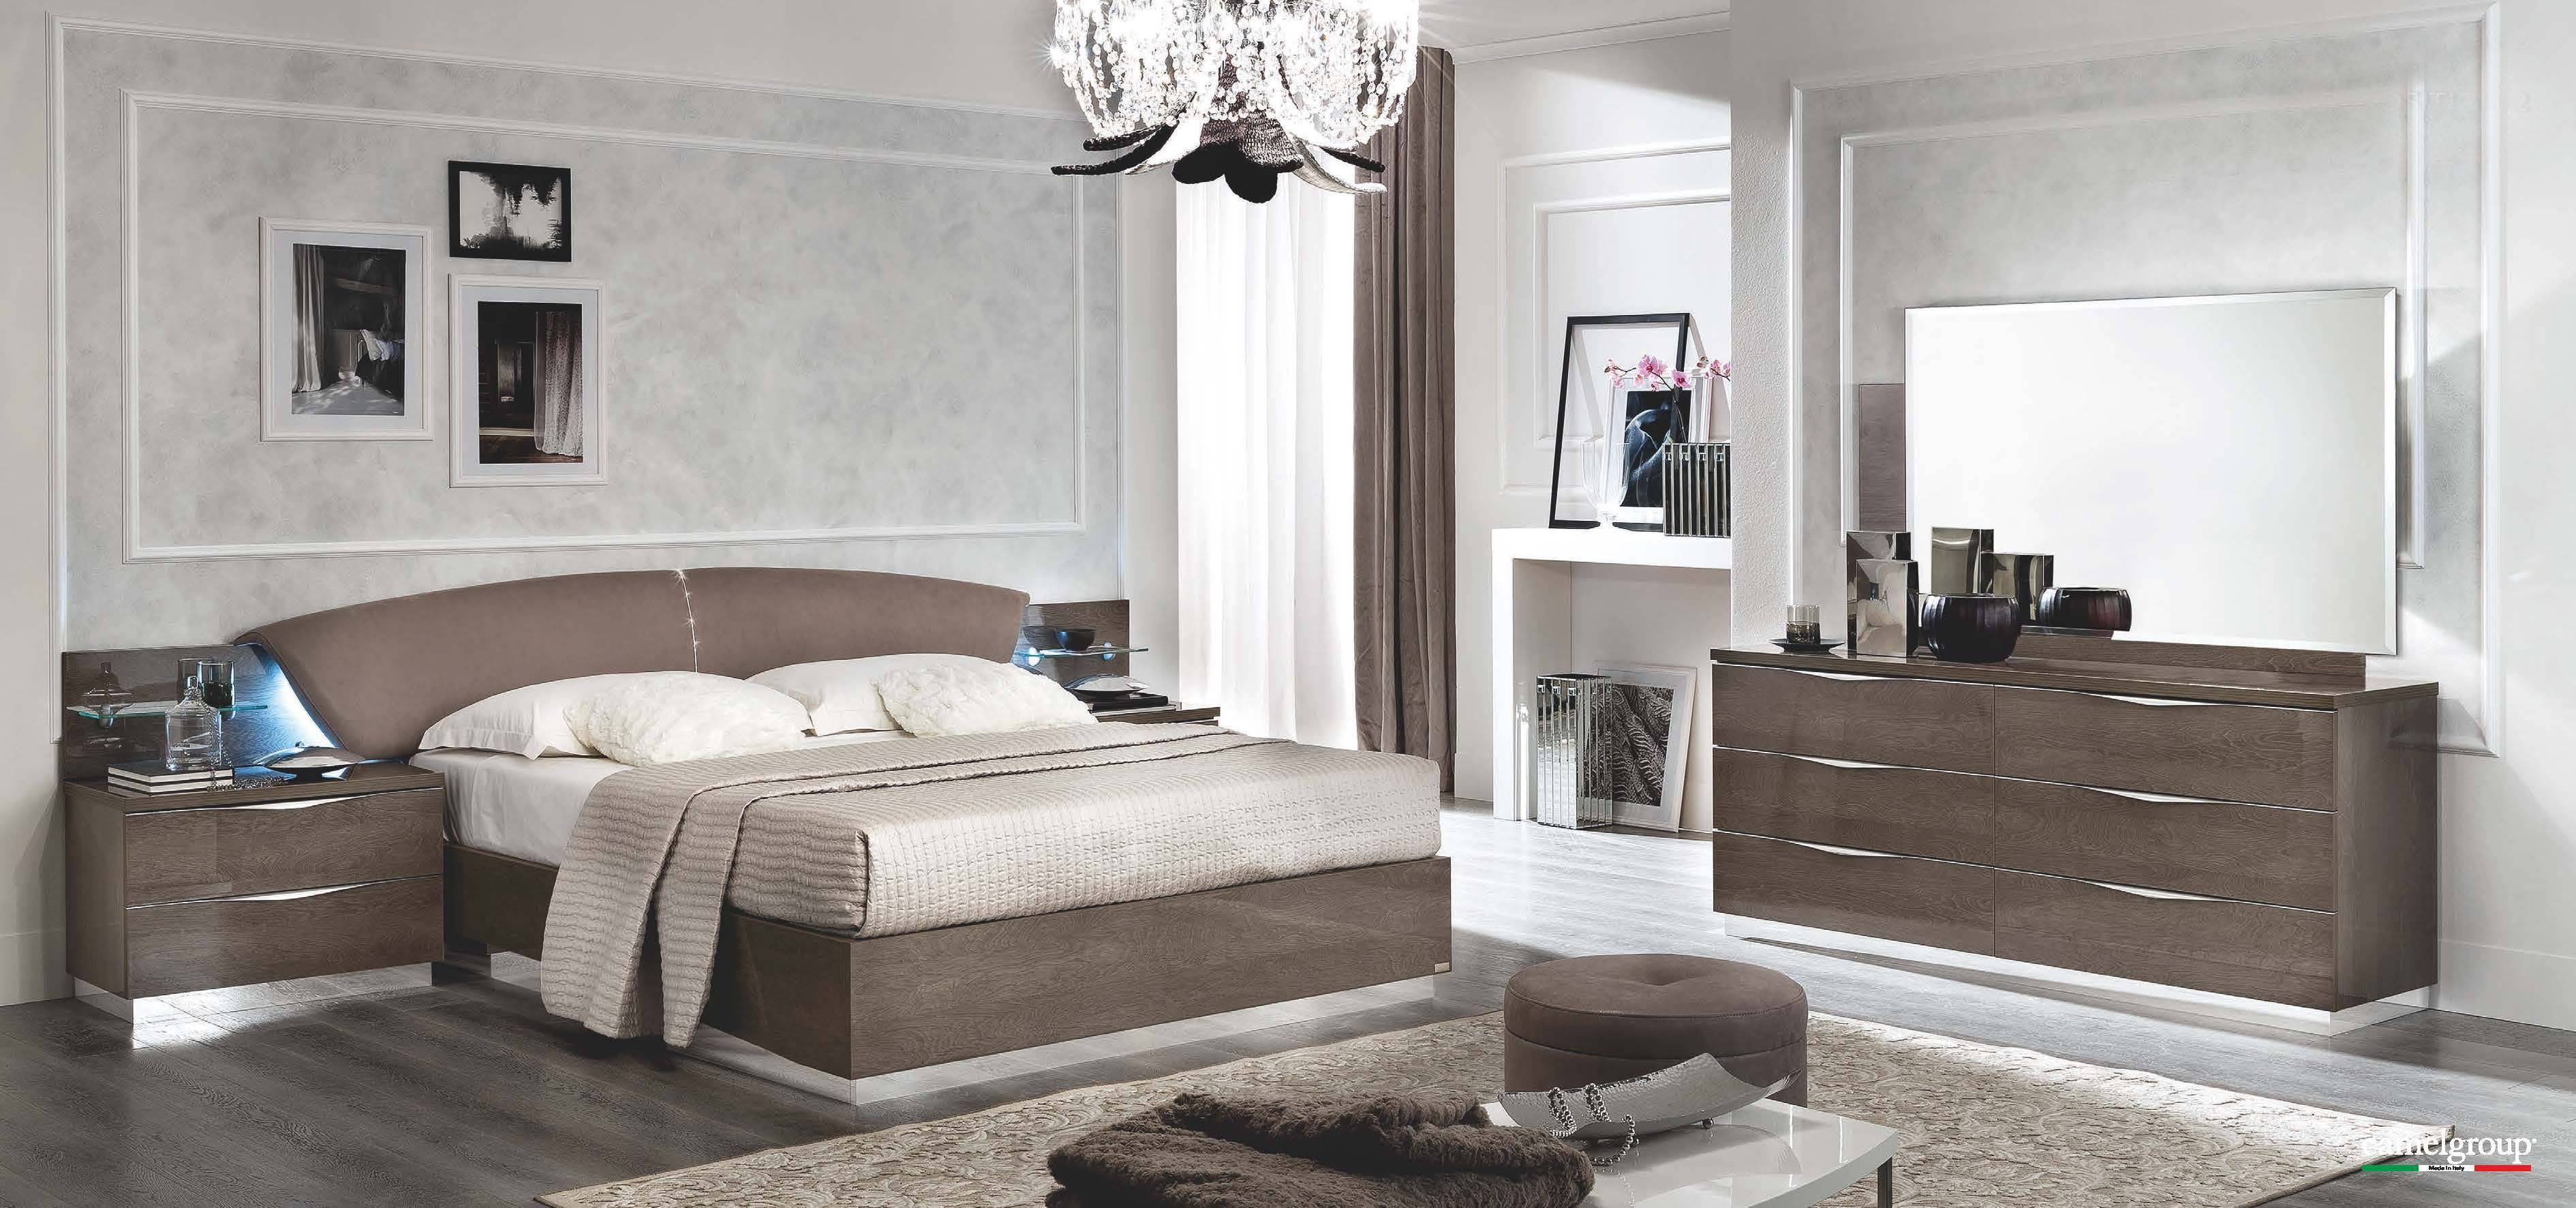 SKU 254833. Made In Italy Quality Design Bedroom Furniture